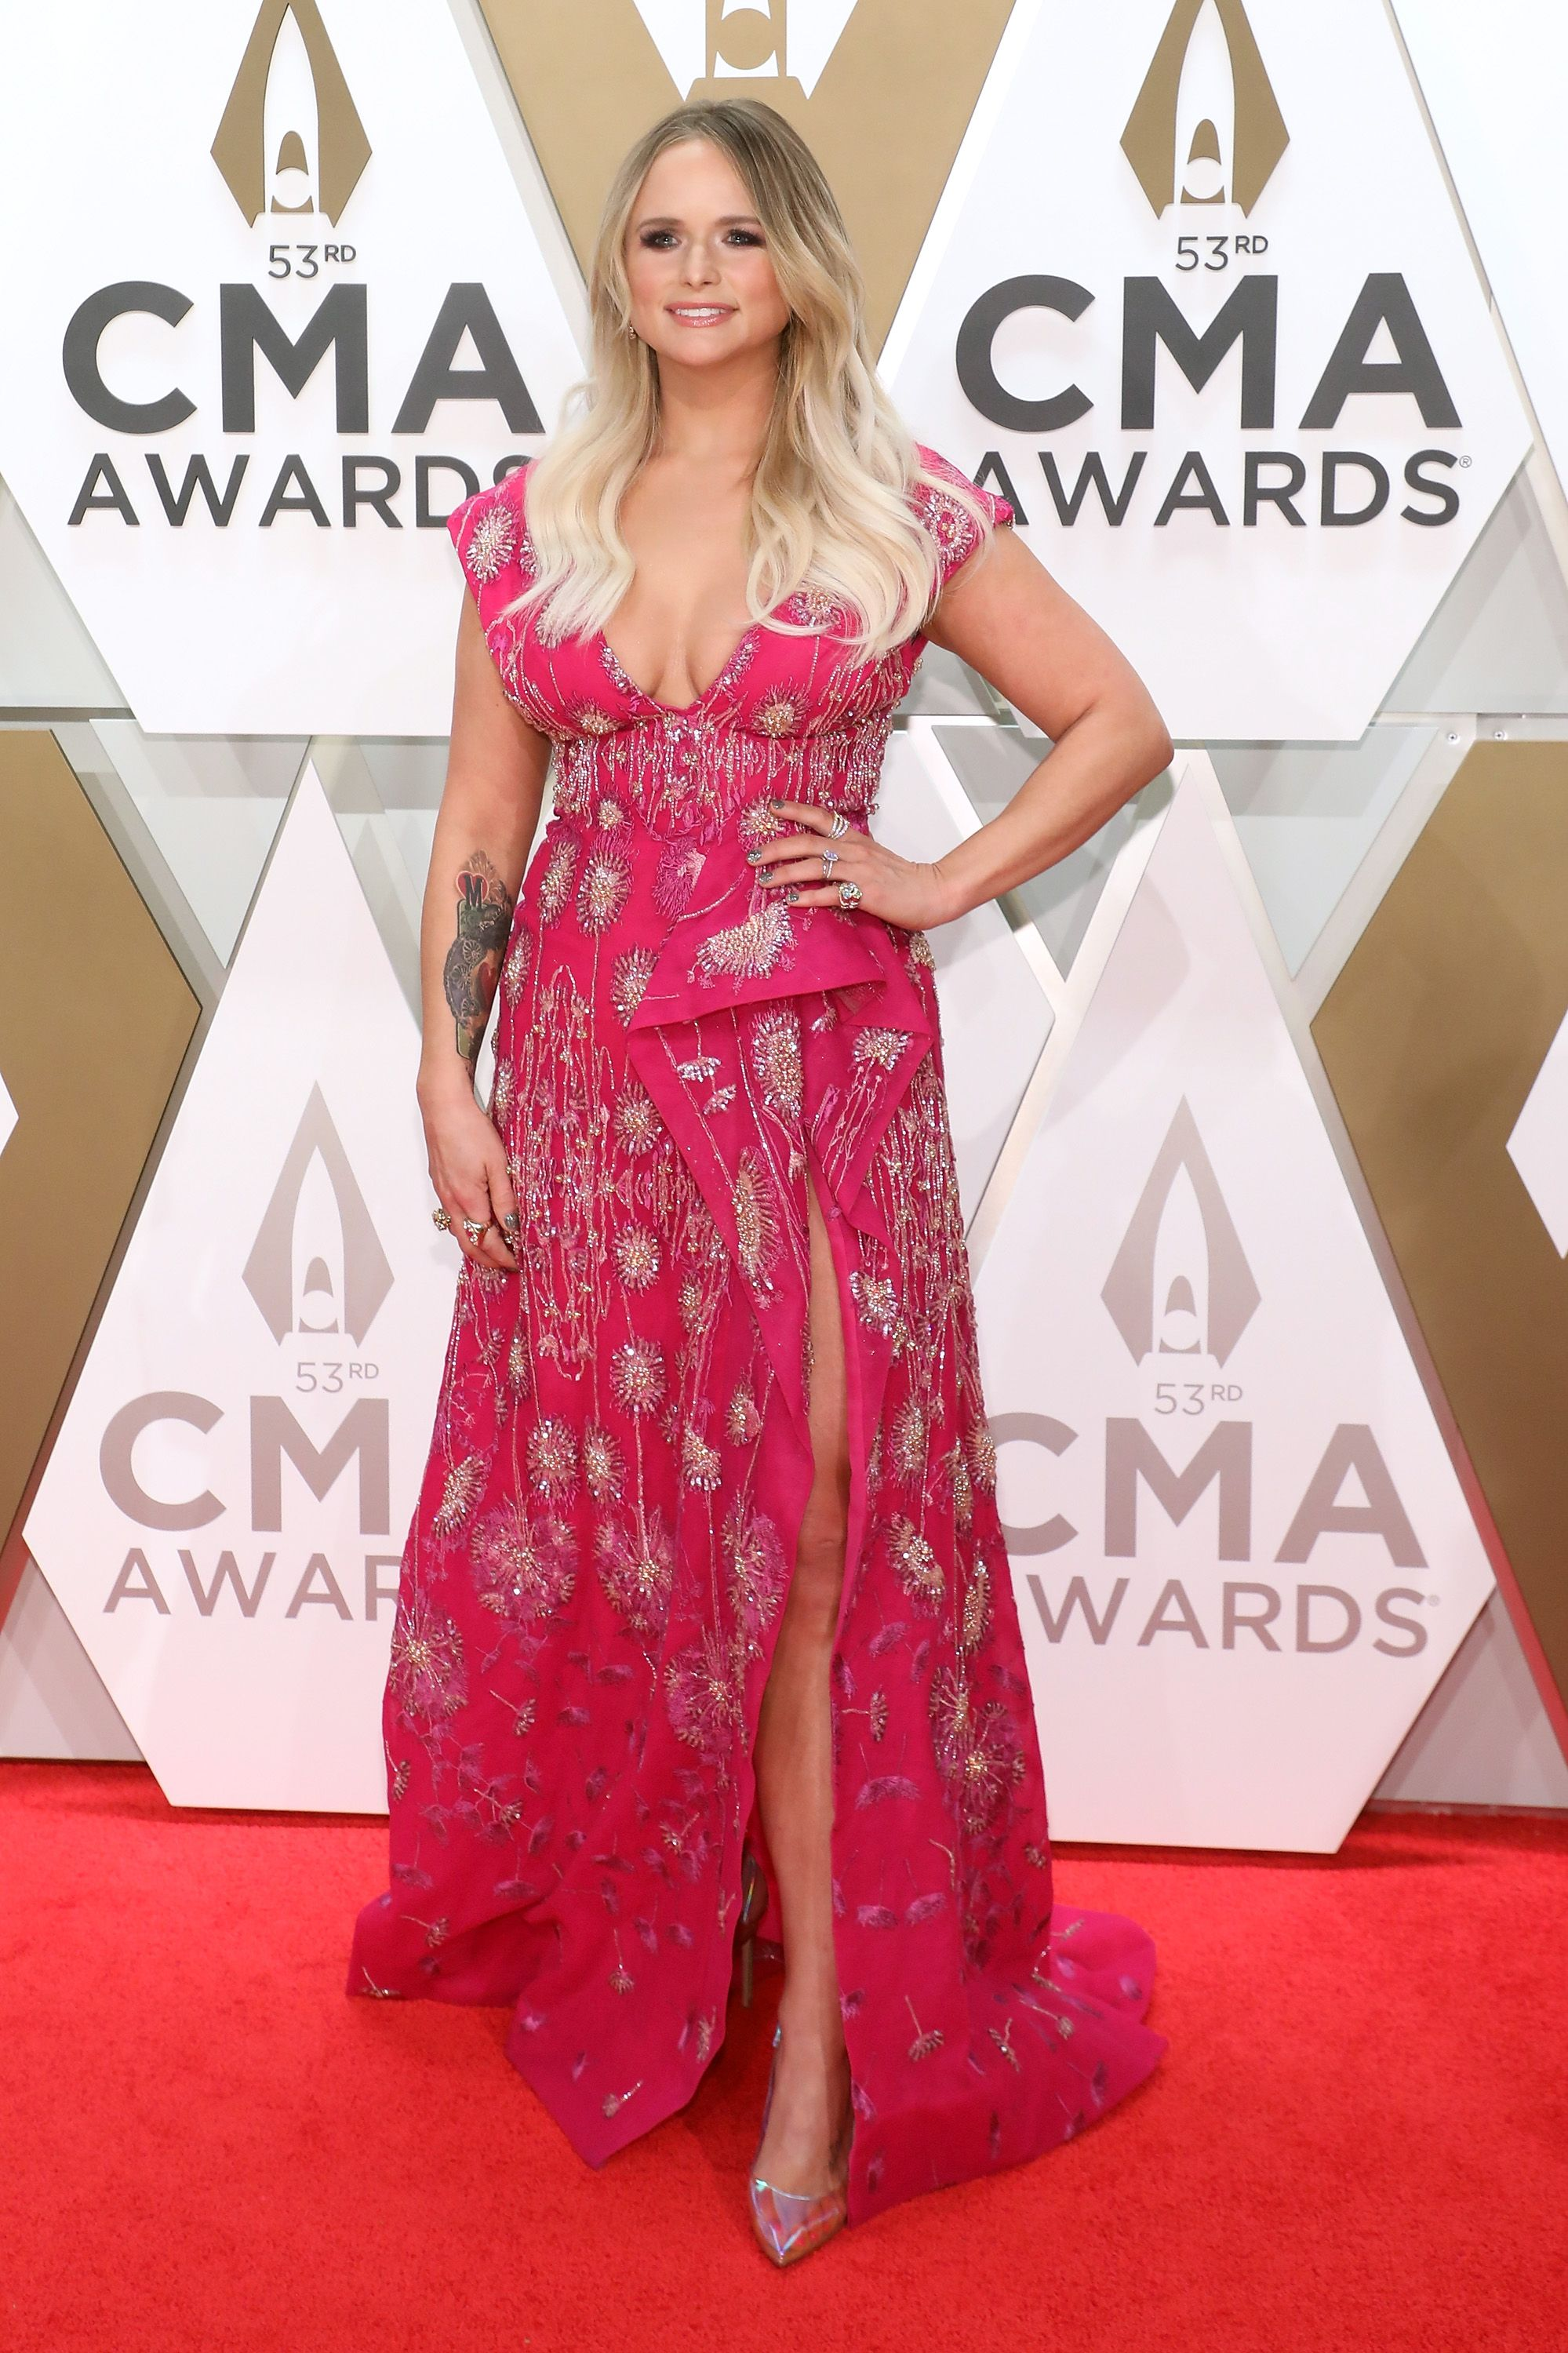 Miranda Lambert during the 53rd annual CMA Awards at Bridgestone Arena on November 13, 2019, in Nashville, Tennessee. | Source: Getty Images